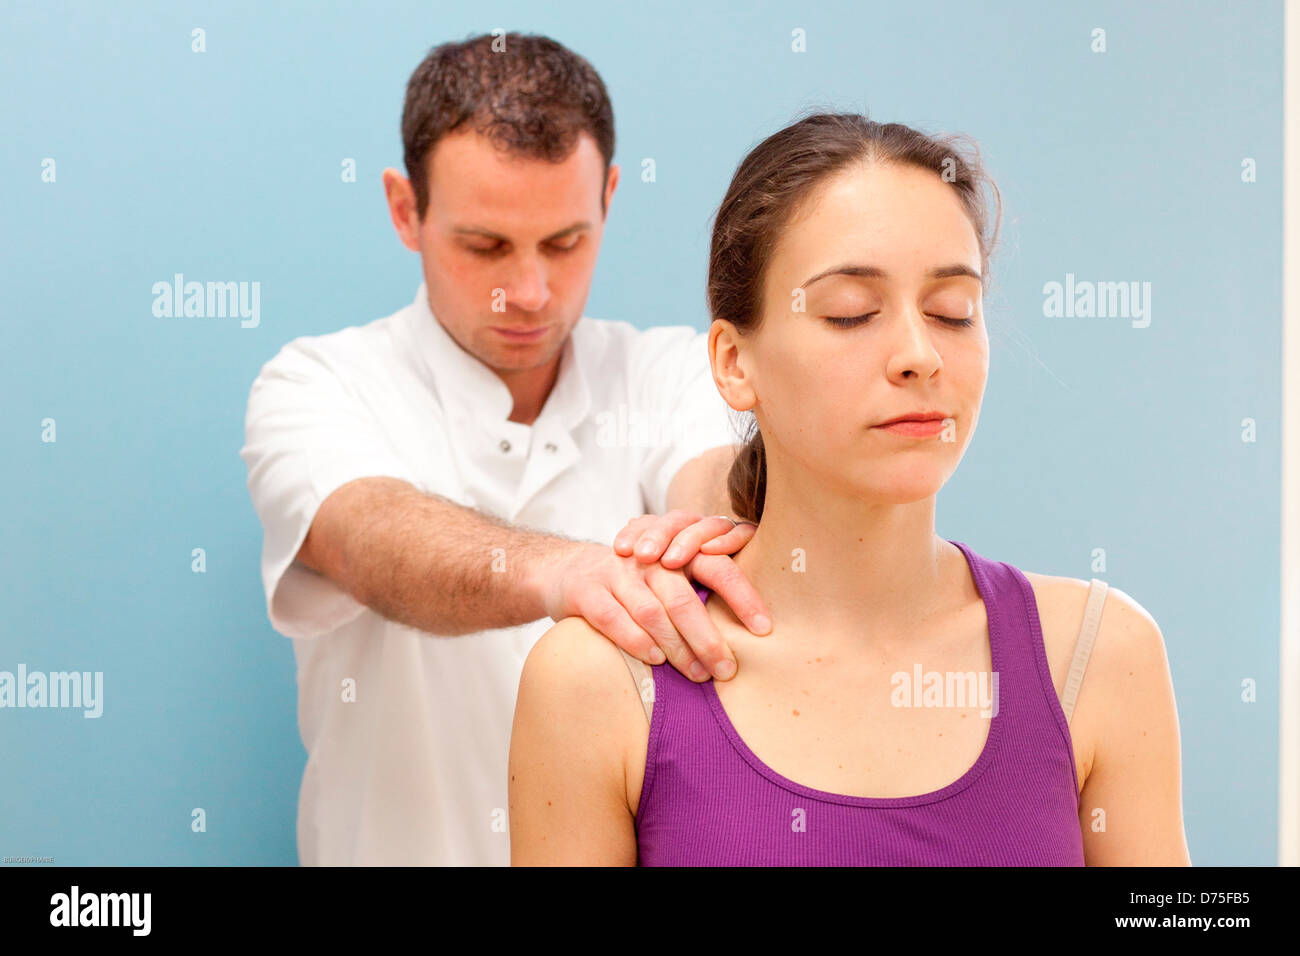 Session of osteopathy tissue. - Stock Image